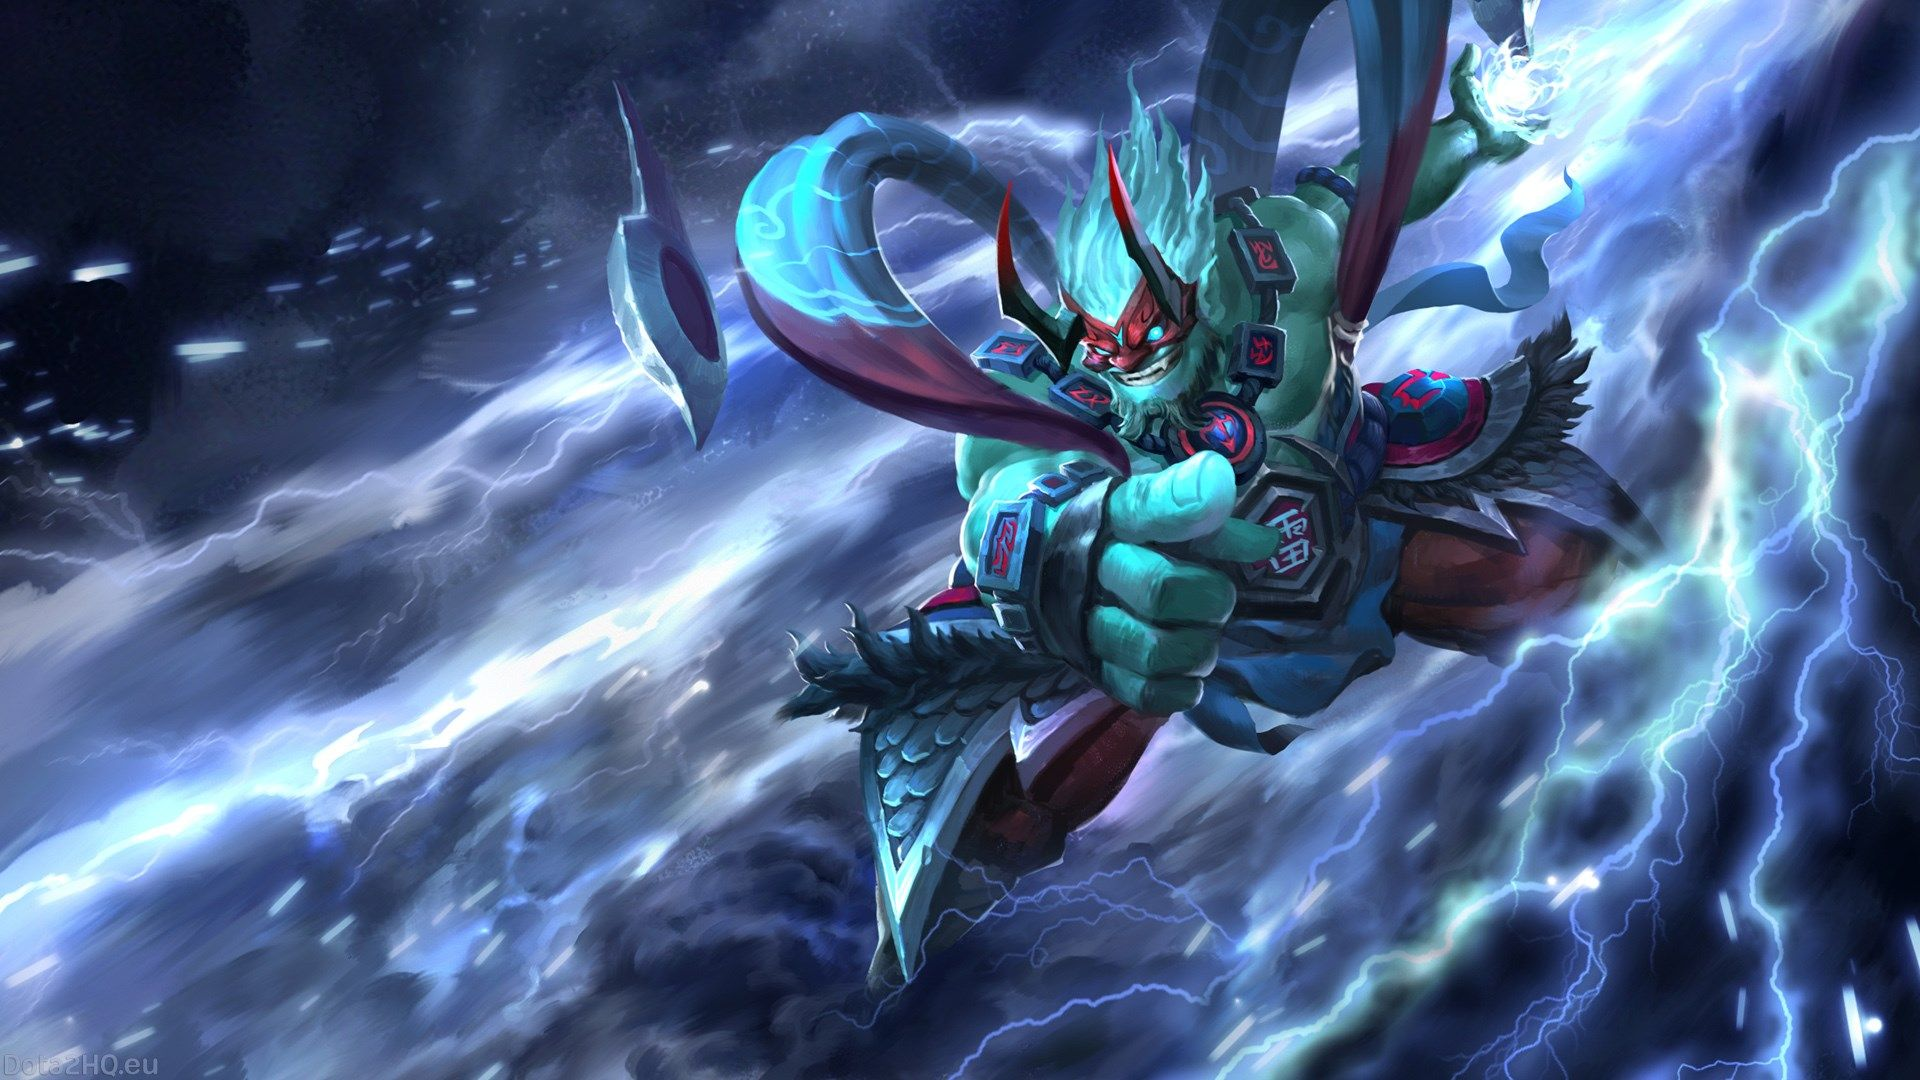 1920x1080 Storm Spirit Dota 2 Wallpaper Hd Dota Pinterest